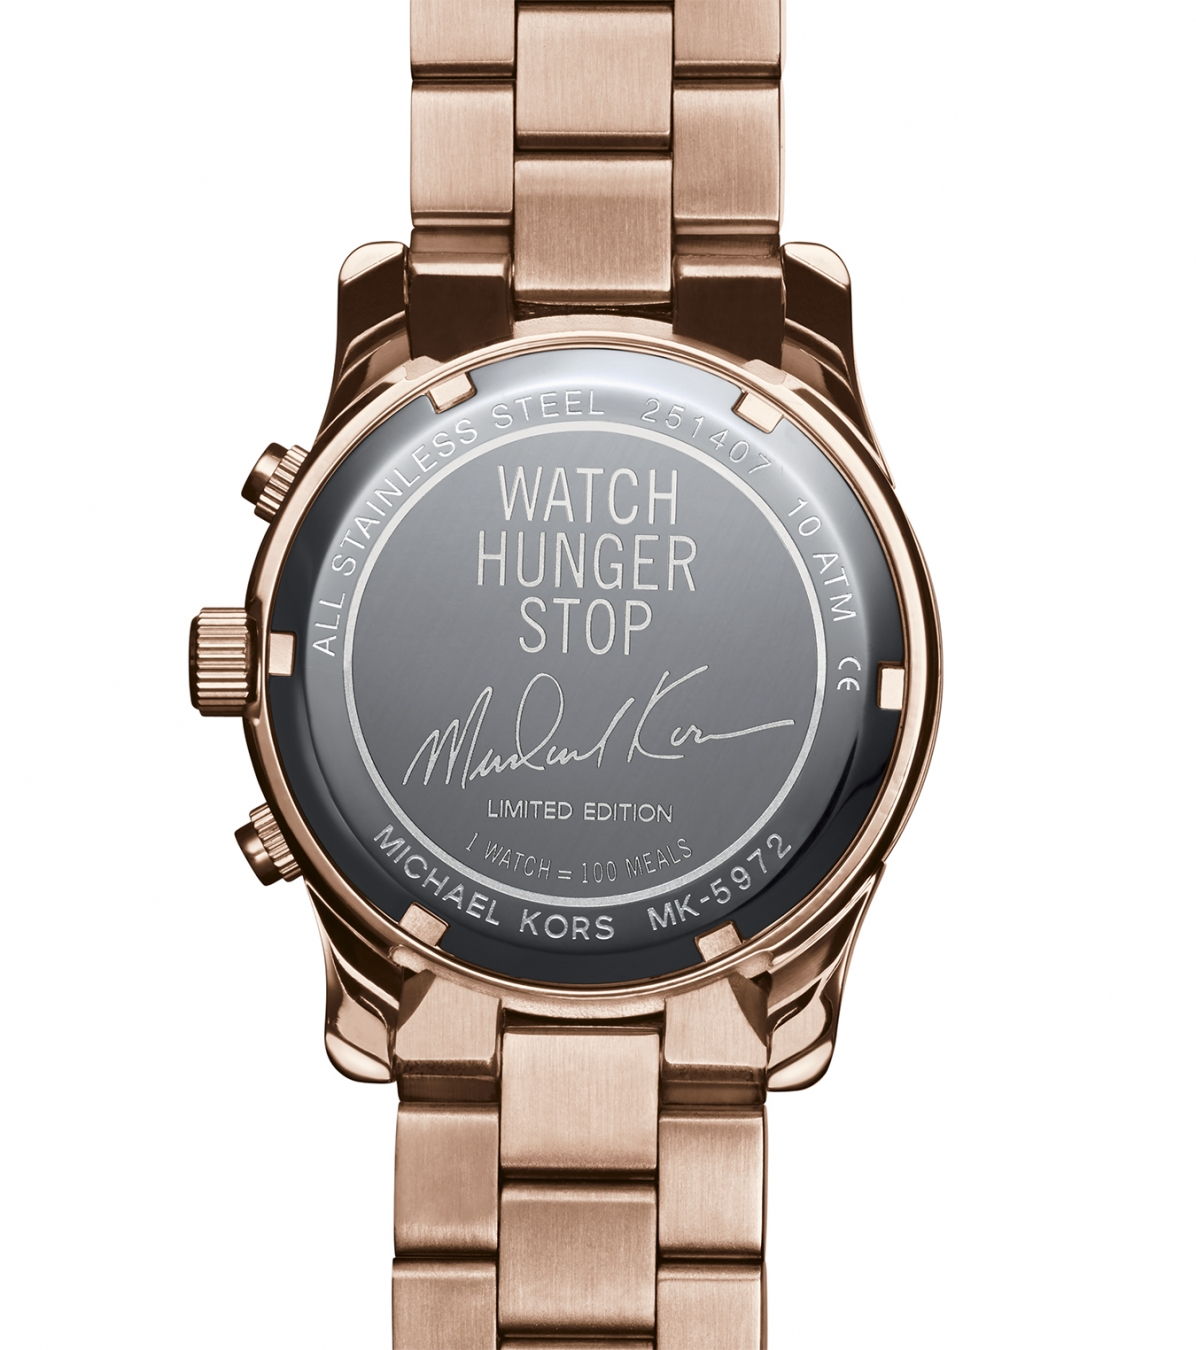 4e78fea7850a The engraved back of the Michael Kors 100 series limited edition watch.